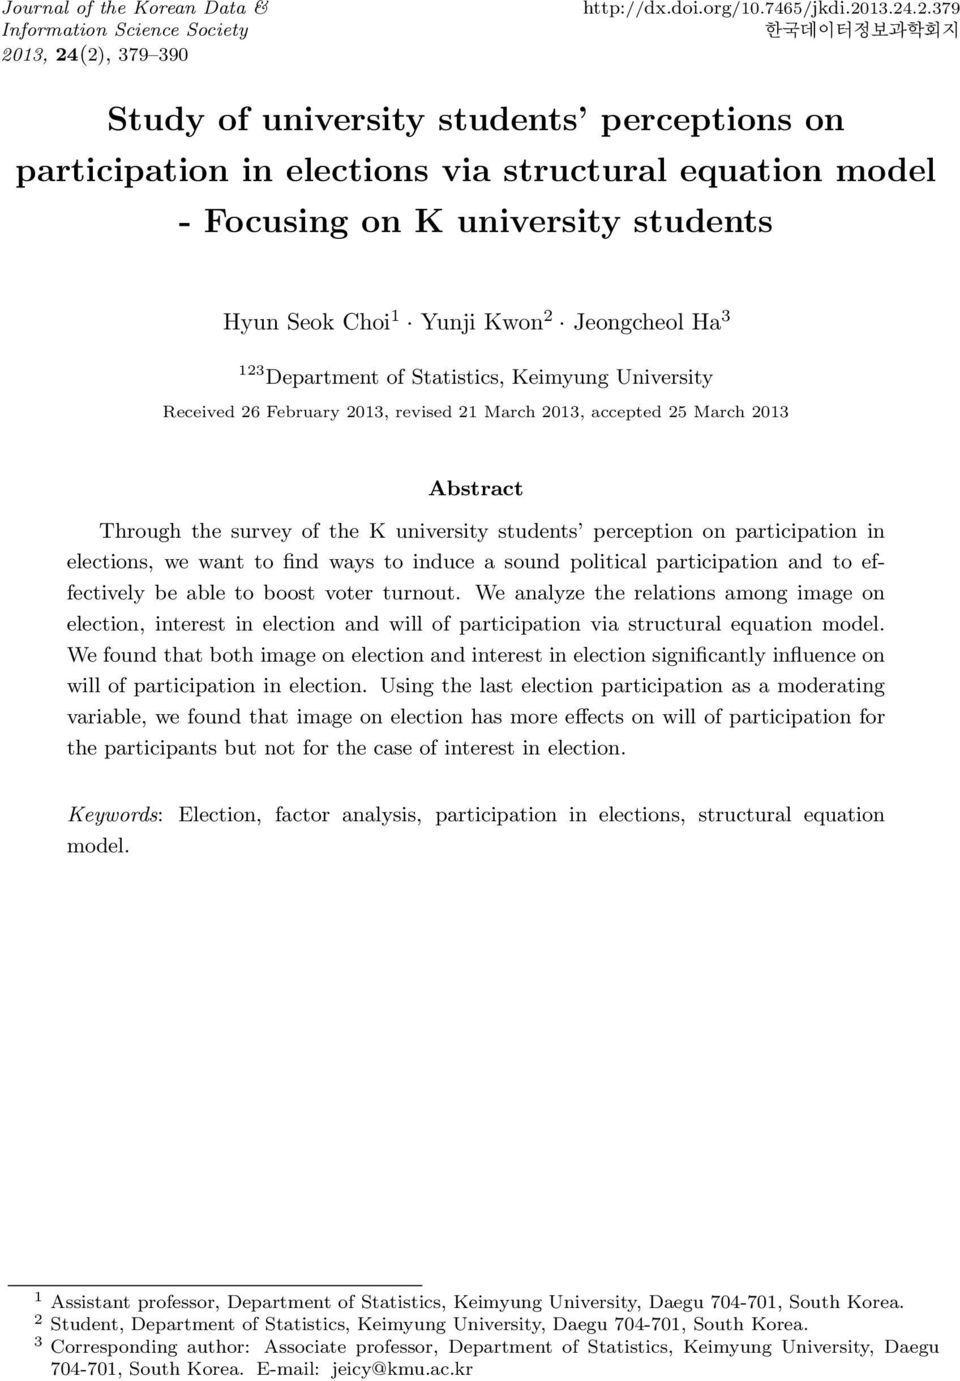 (2), 379 390 http://dx.doi.org/10.7465/jkdi.2013.24.2.379 한국데이터정보과학회지 Study of university students perceptions on participation in elections via structural equation model - Focusing on K university